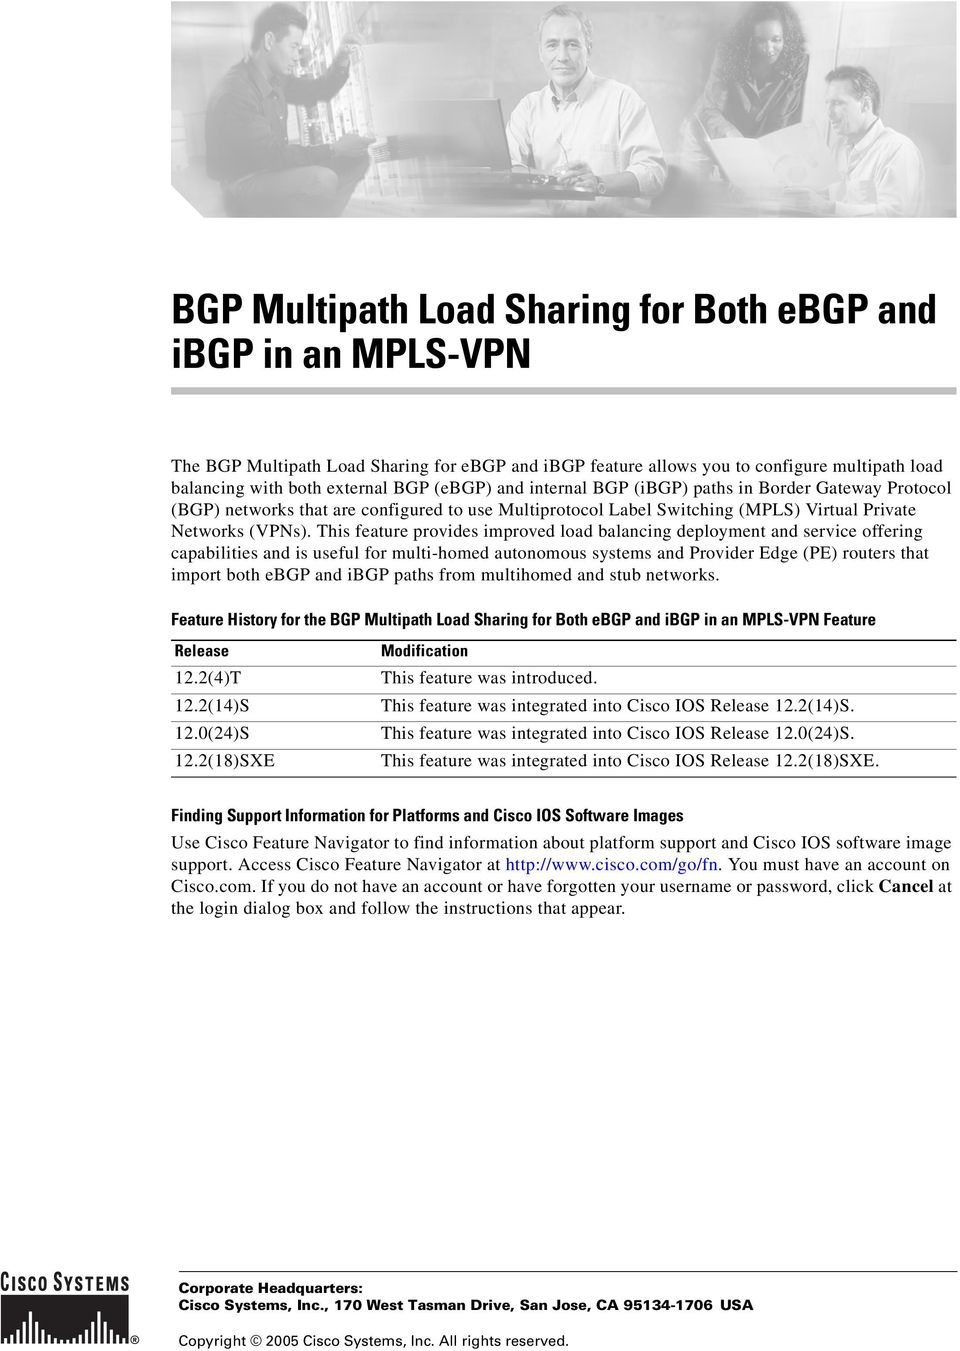 This feature provides improved load balancing deployment and service offering capabilities and is useful for multi-homed autonomous systems and Provider Edge (PE) routers that import both ebgp and